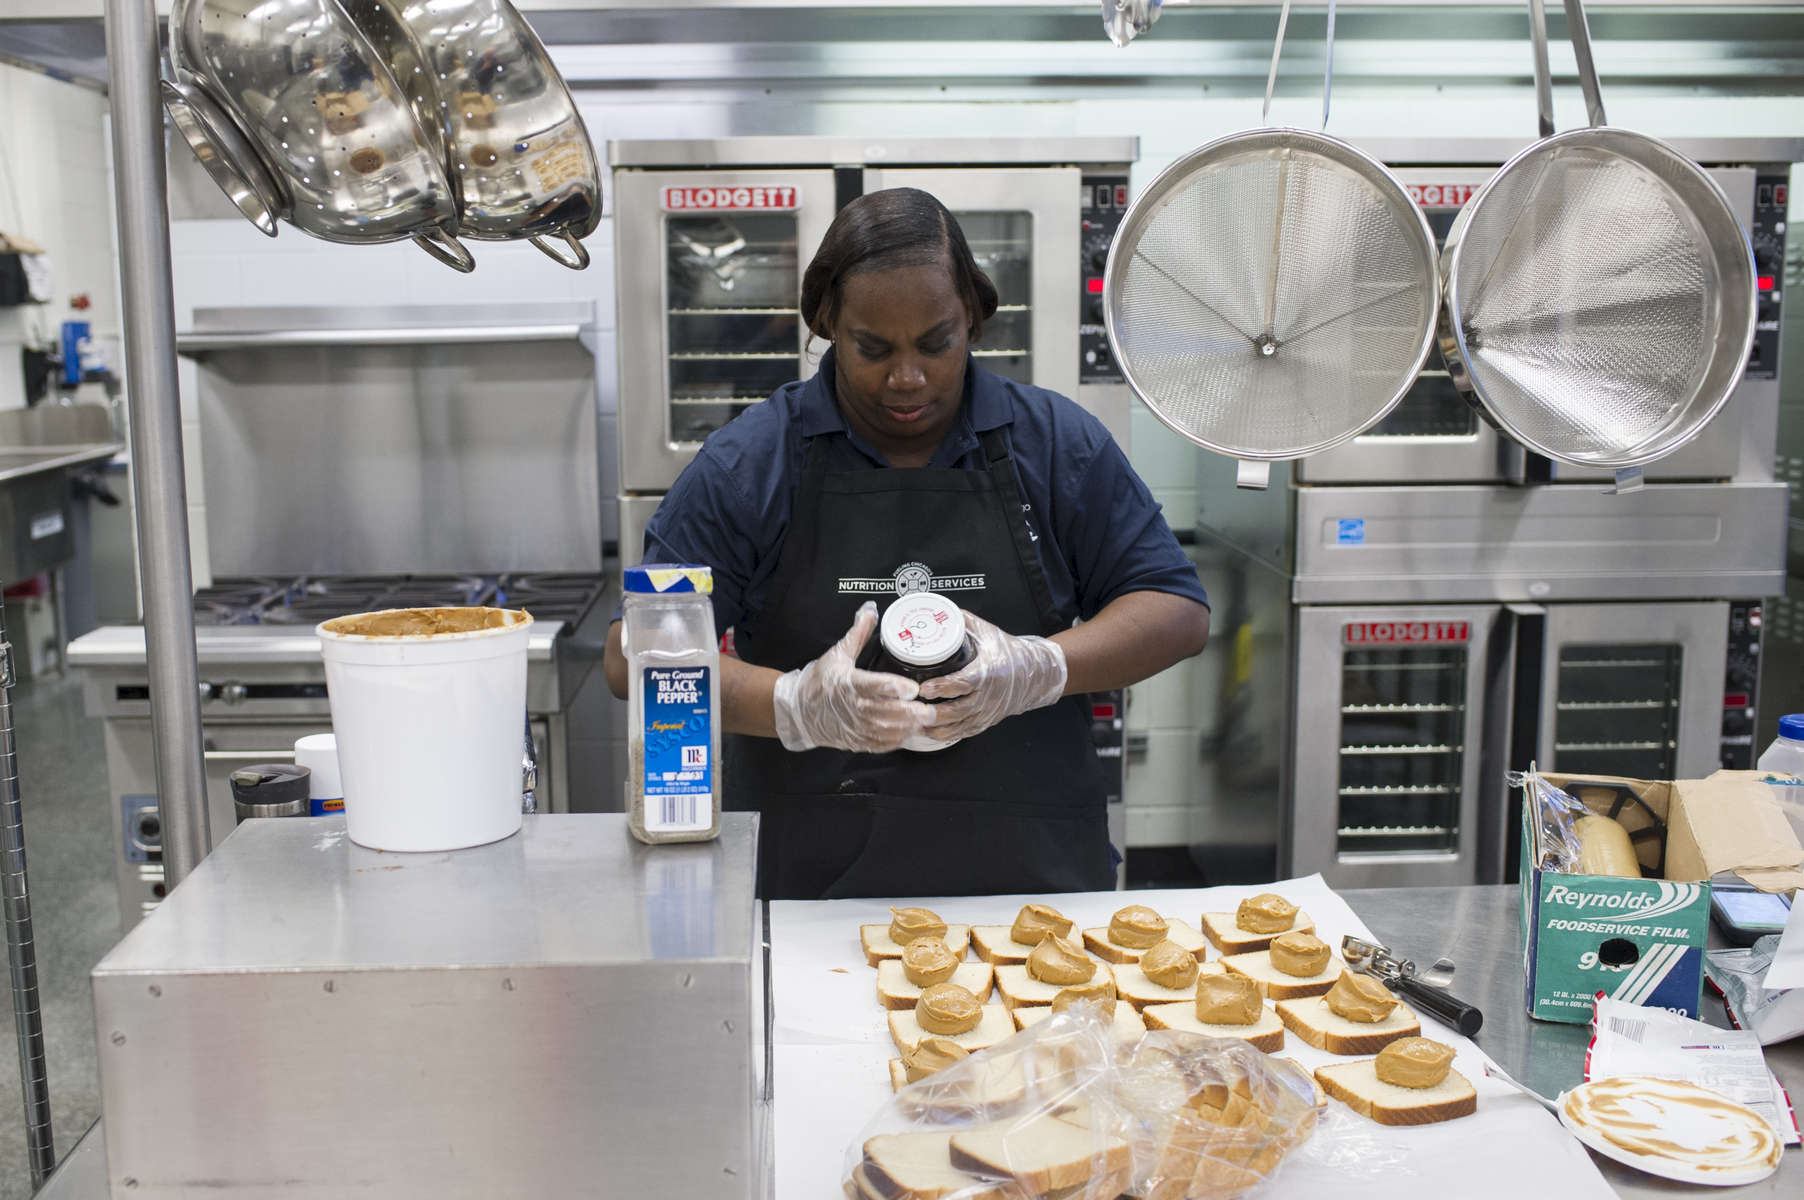 School cook Chandra Kilgore prepares peanut butter and jelly sandwiches in the school kitchen at Dyett High School for the Arts, October 31, 2016.